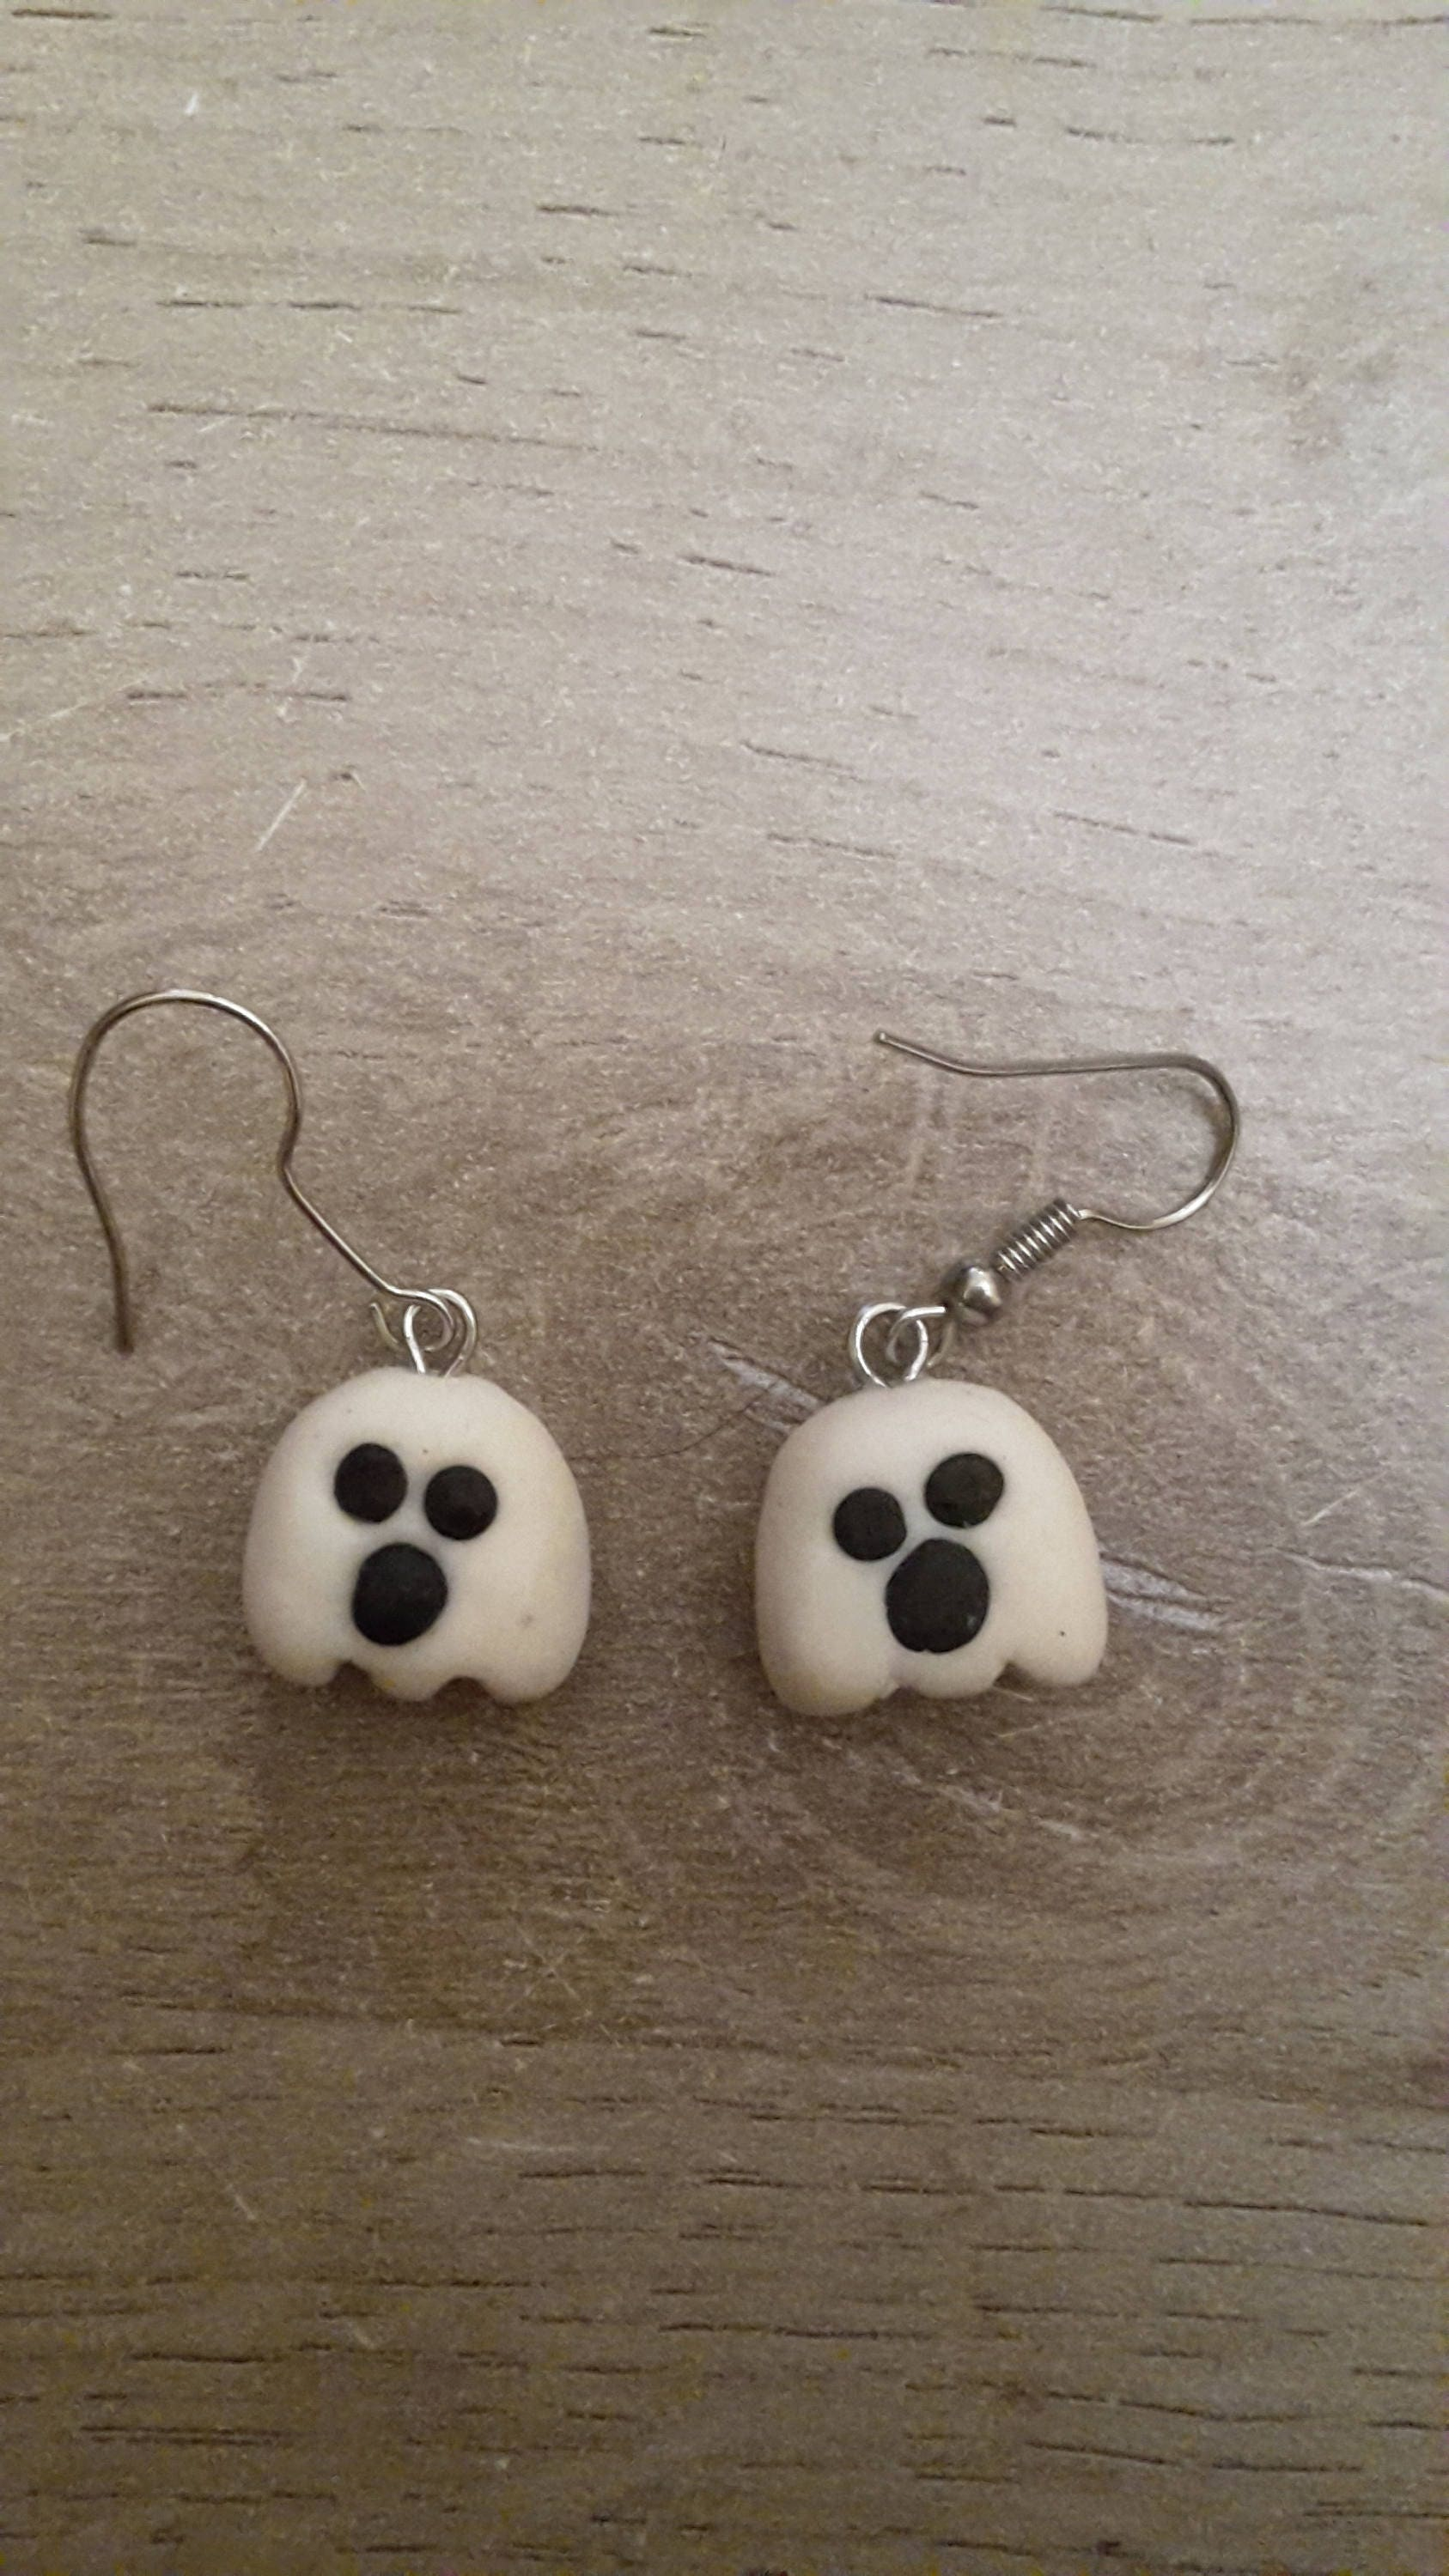 halloween il c fullxfull wrap ghost jewelry earrings cuff